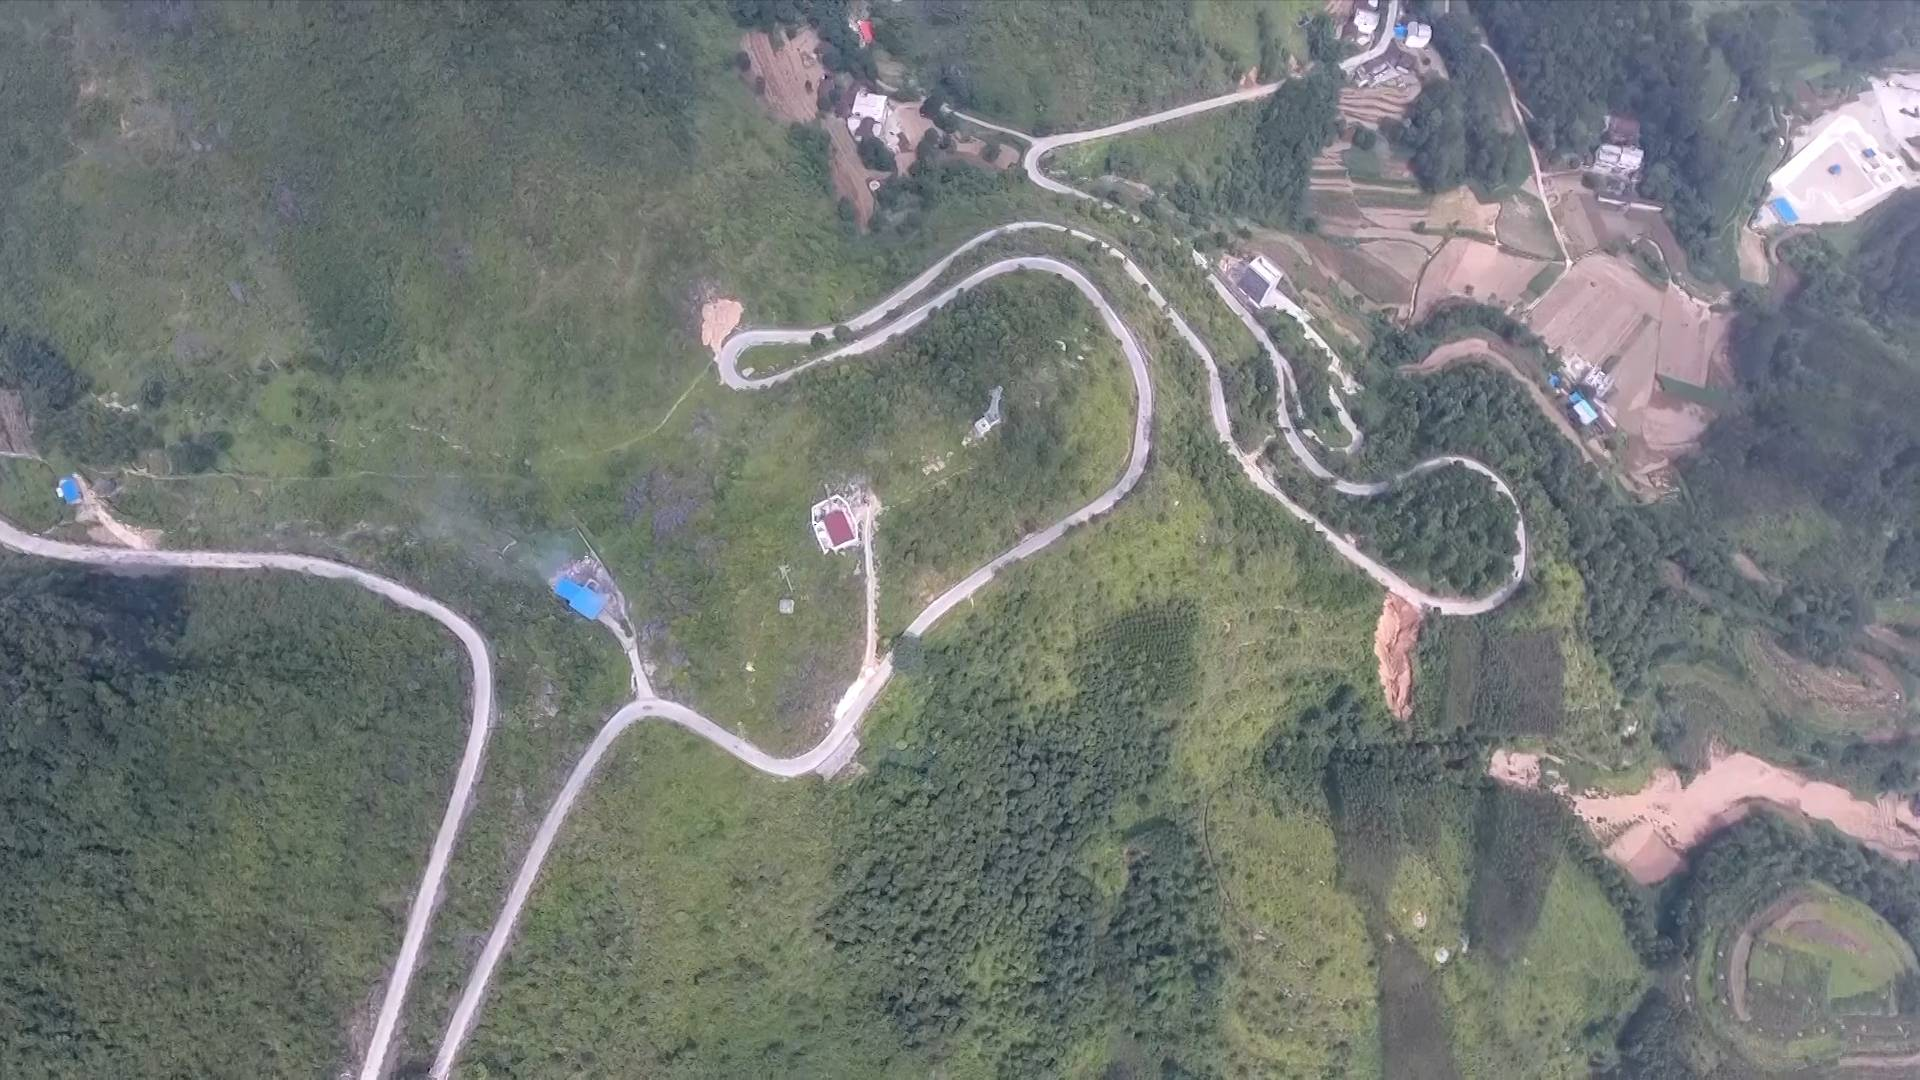 China's Guangxi makes significant progress in poverty alleviation through building roads